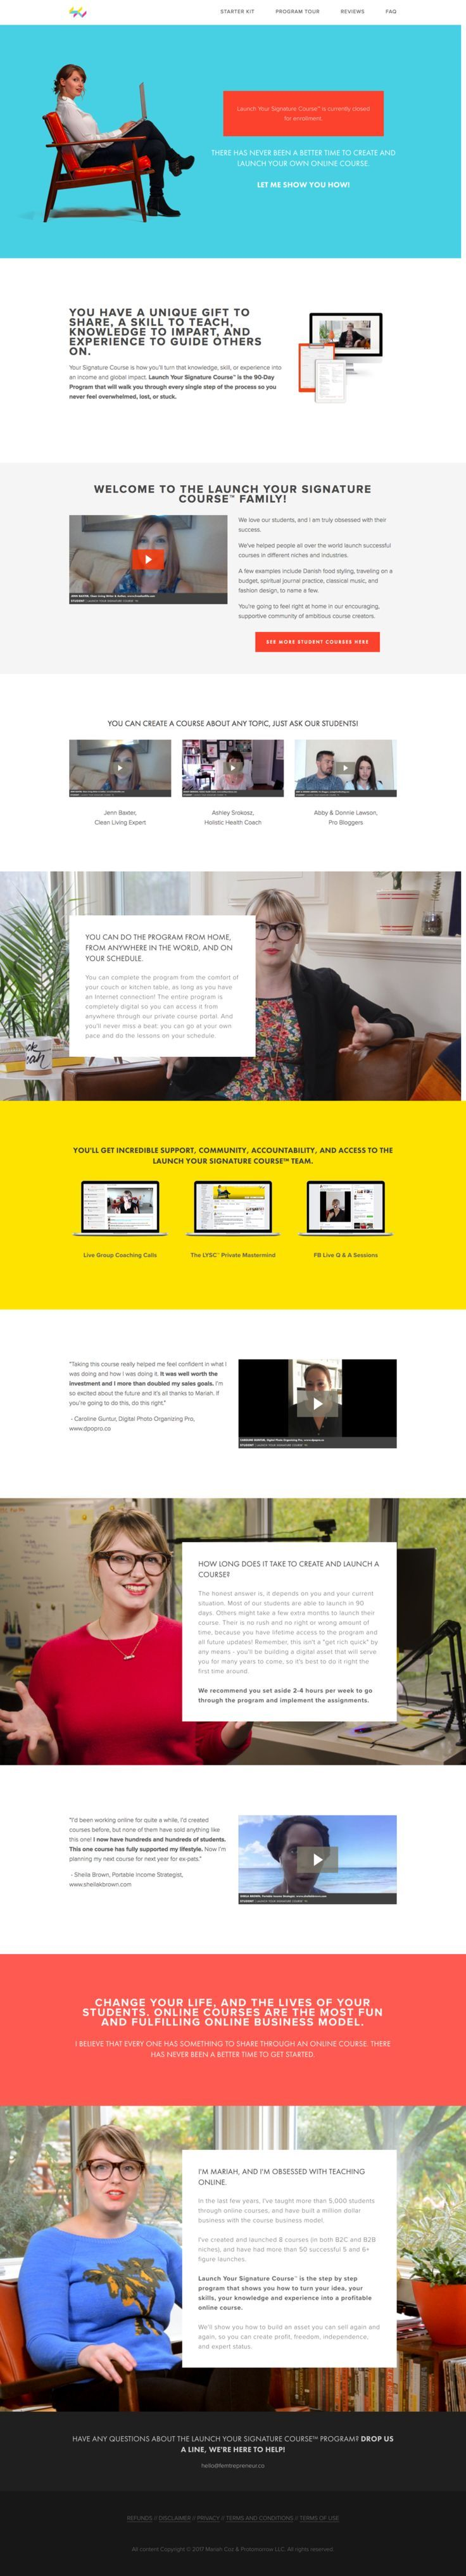 Website home page or start here page example - In this episode, we're addressing why it is the best practice to create a  separate website for your course. It will save you so much time in the long  run, and we're going to explain why!  Be sure to grab our free Squarespace video training too so you can get an  insider's peek into the backend